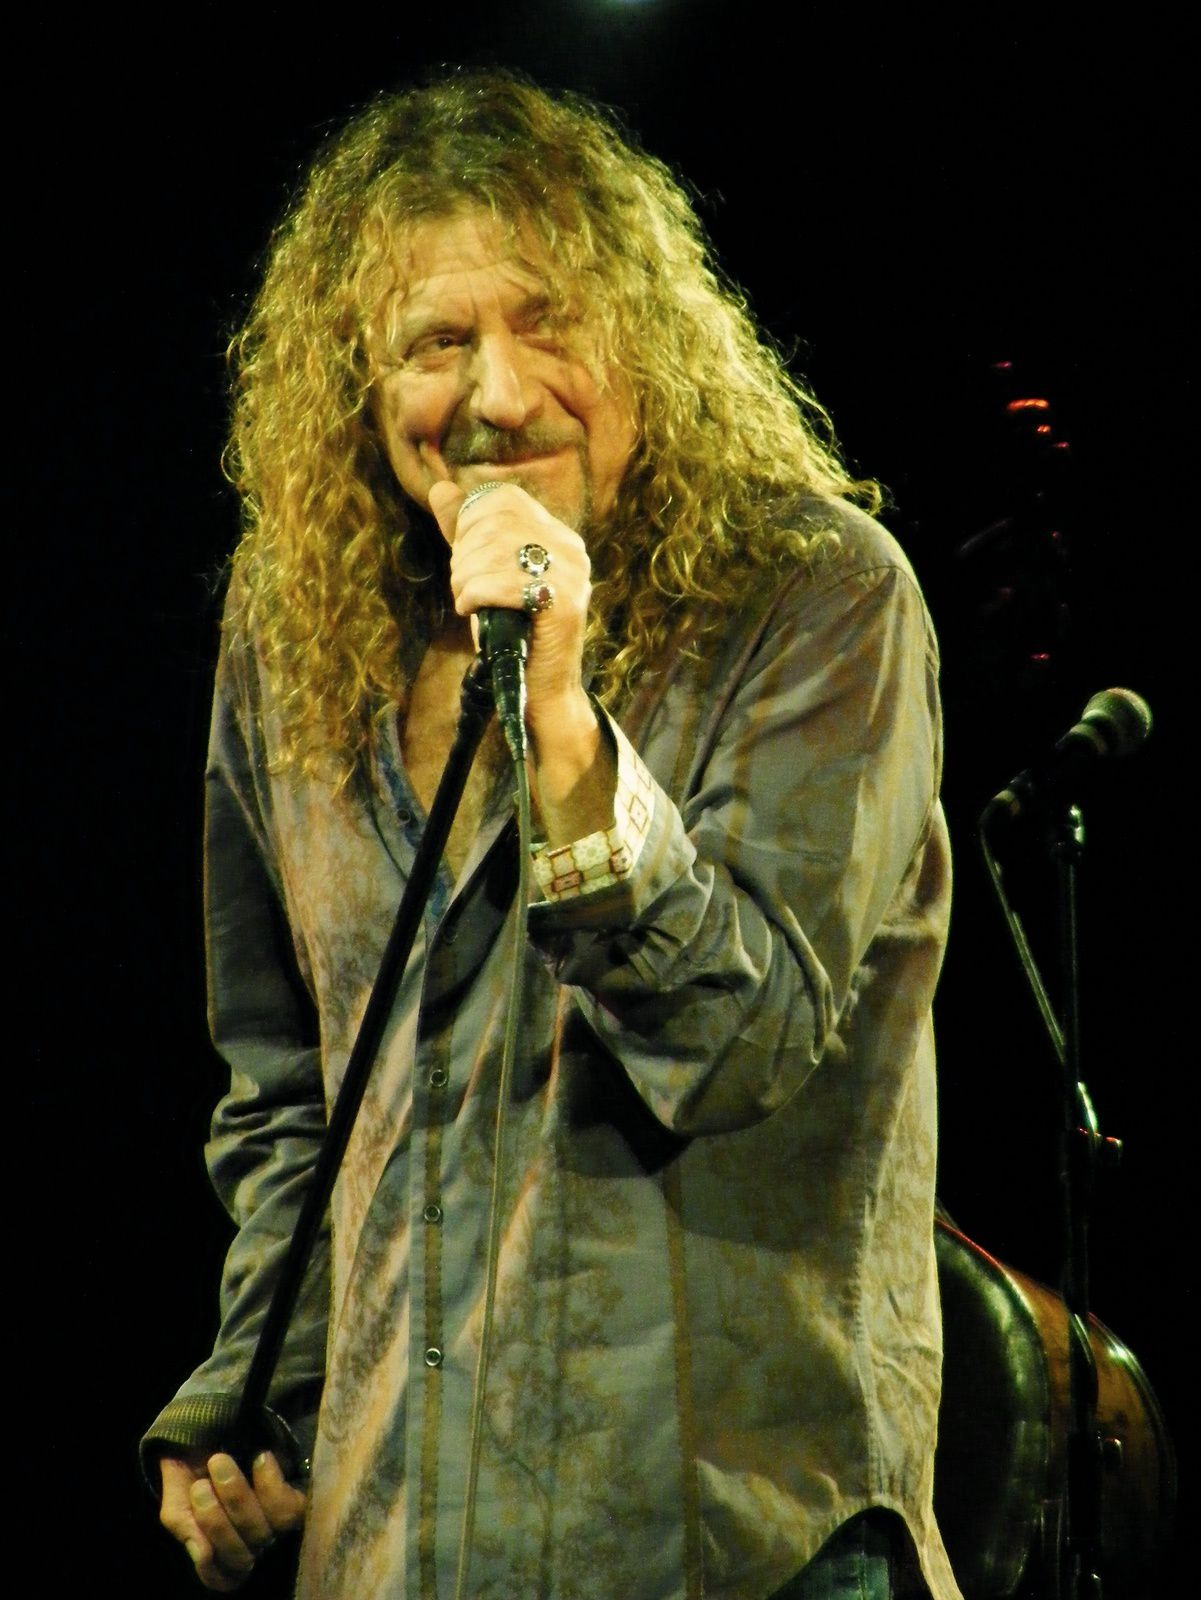 Robert Plant - 31 oct. 2010 - at the Palace Theatre, Manchester (UK)